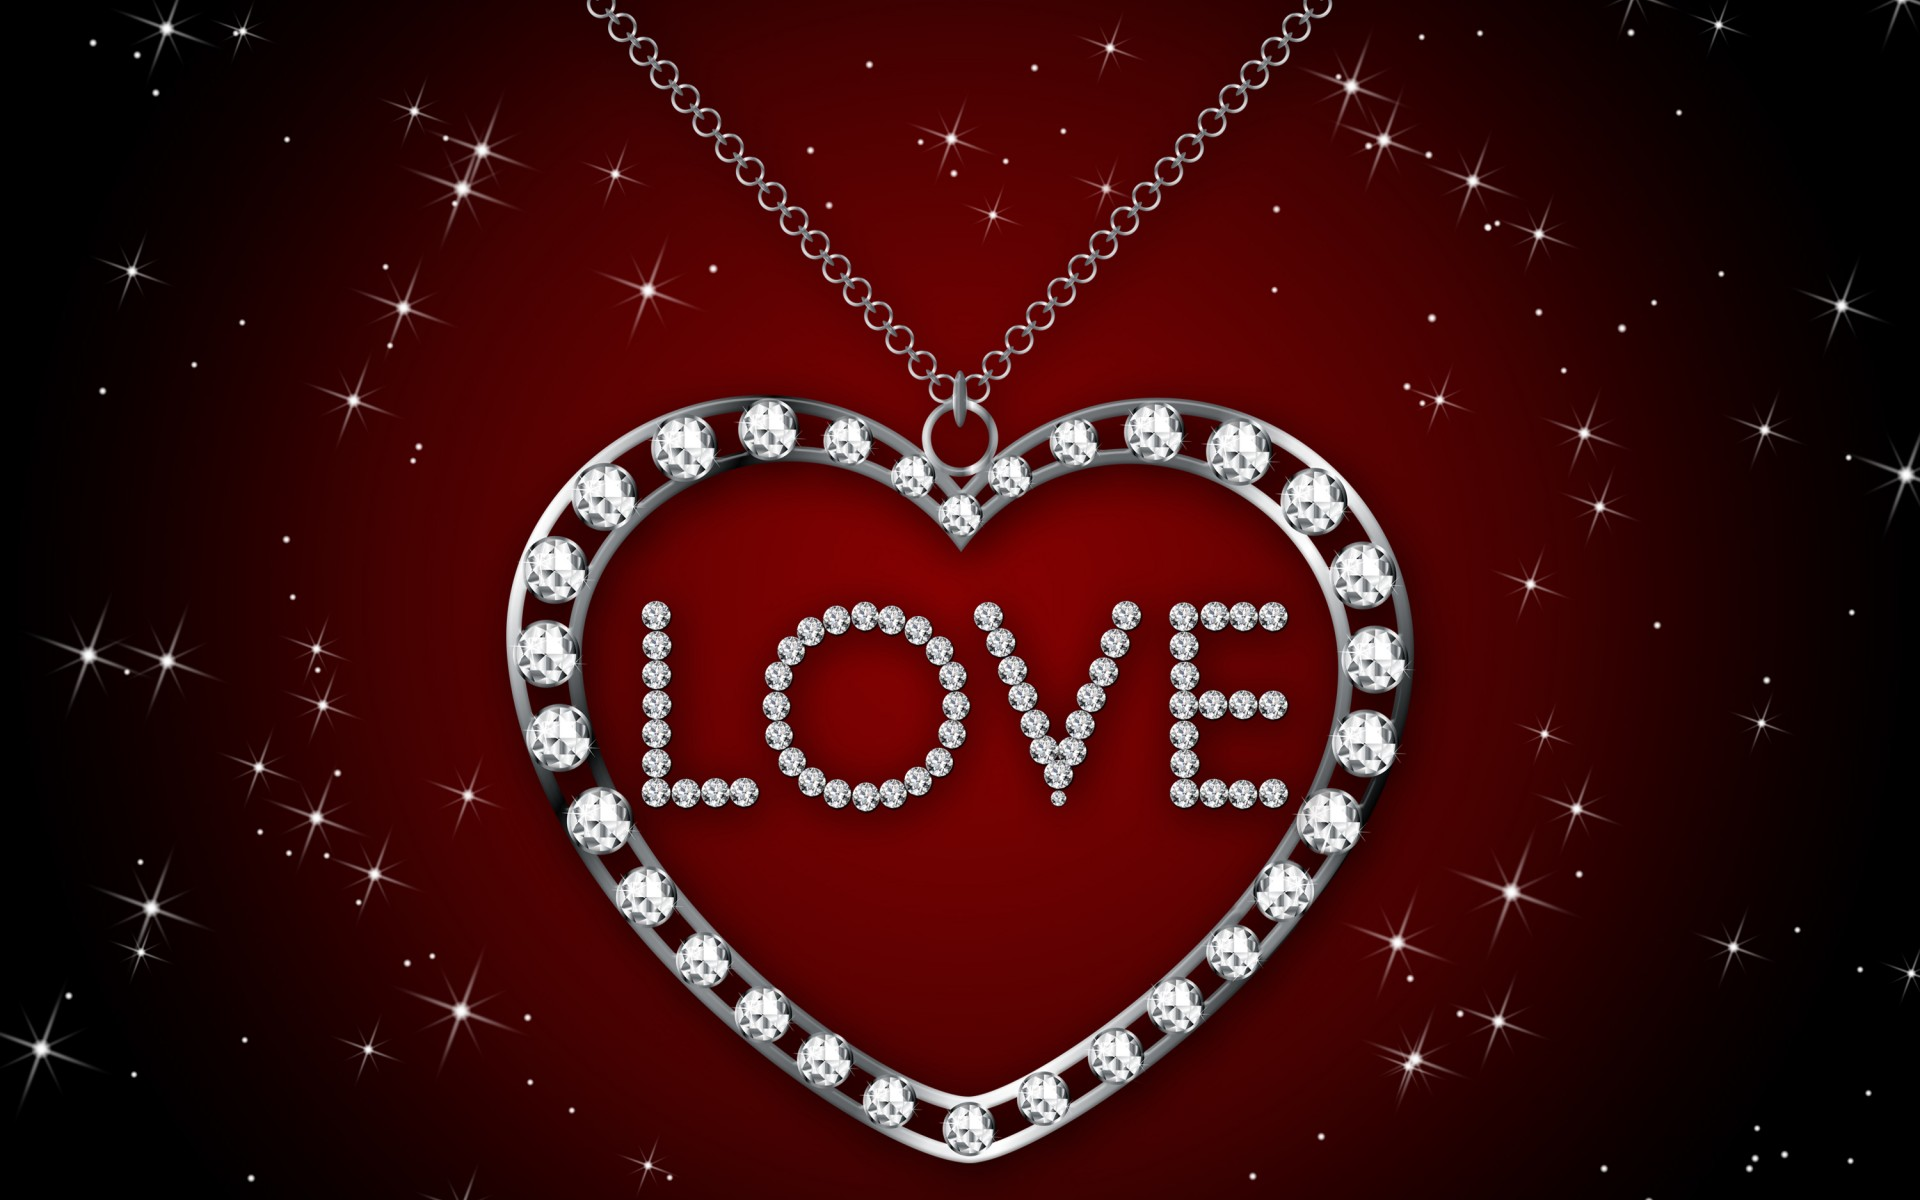 Diamond Heart Necklace Wallpapers Diamond Heart Necklace